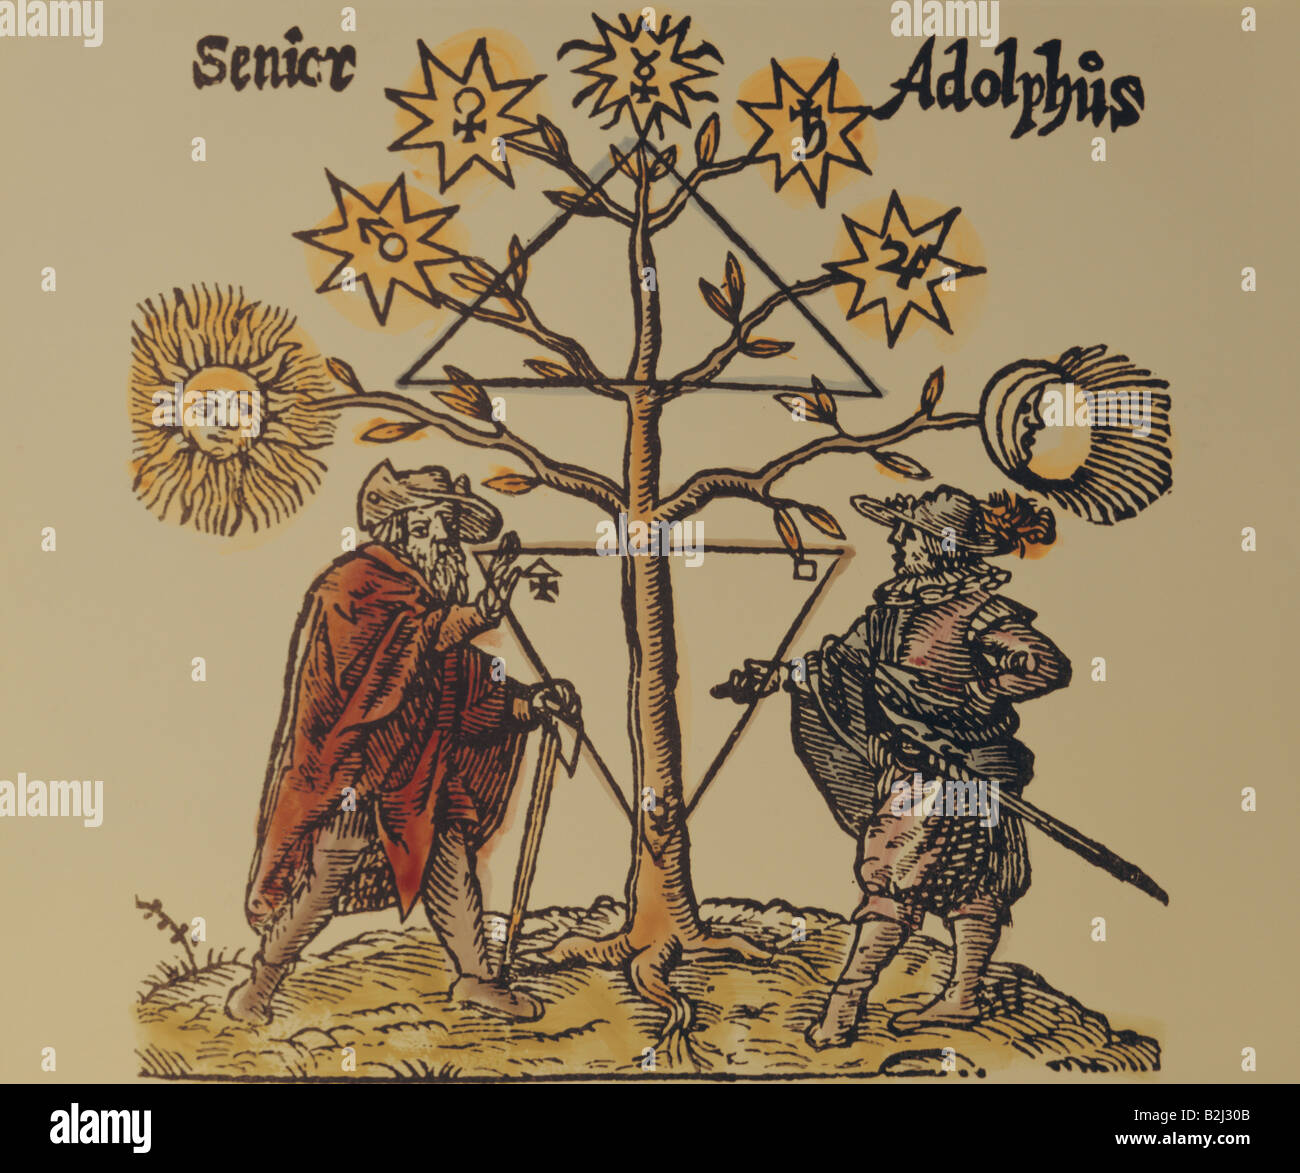 alchemy, allegory, Senior and Adolphus under the planet tree, coloured woodcut, Germany, 17th century, private collection, - Stock Image